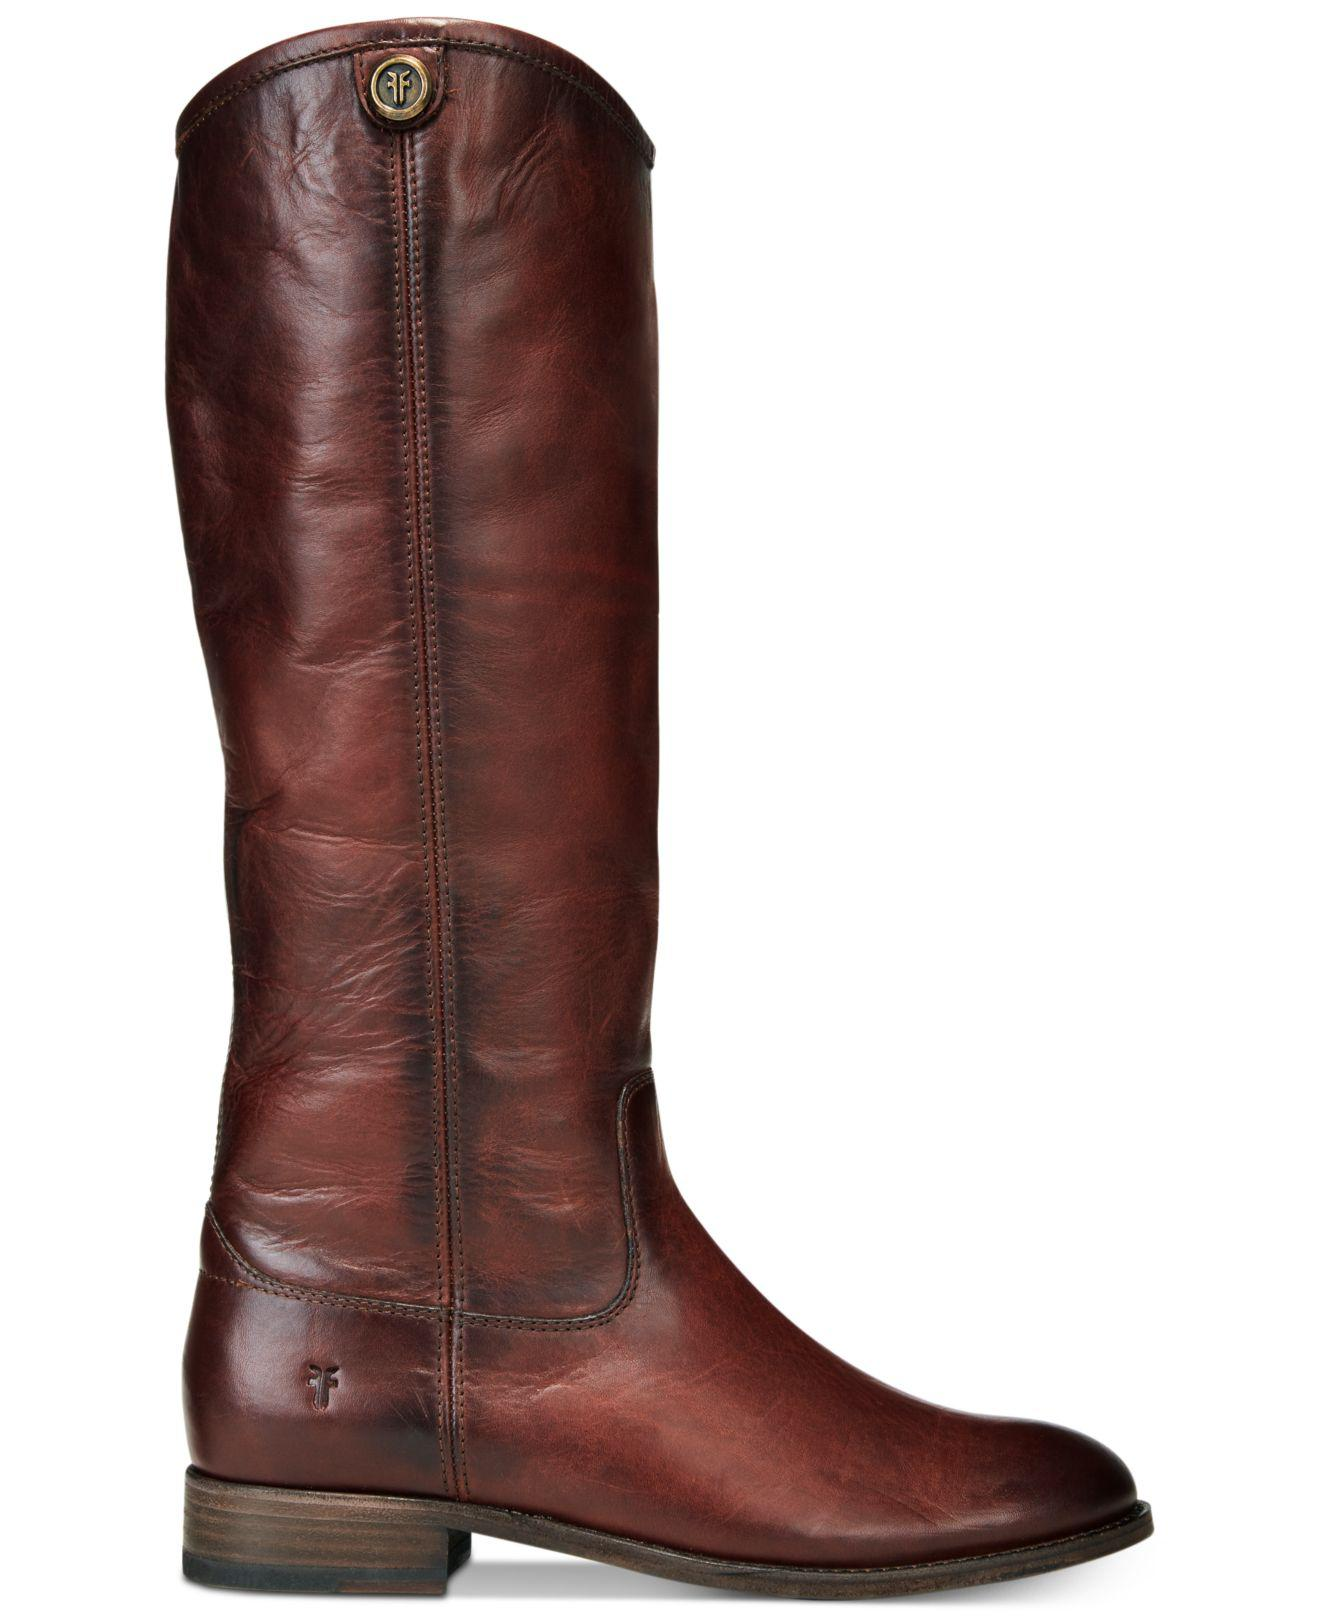 42e48183211 Lyst - Frye Melissa Button 2 Wide-calf Tall Boots in Red - Save 17%